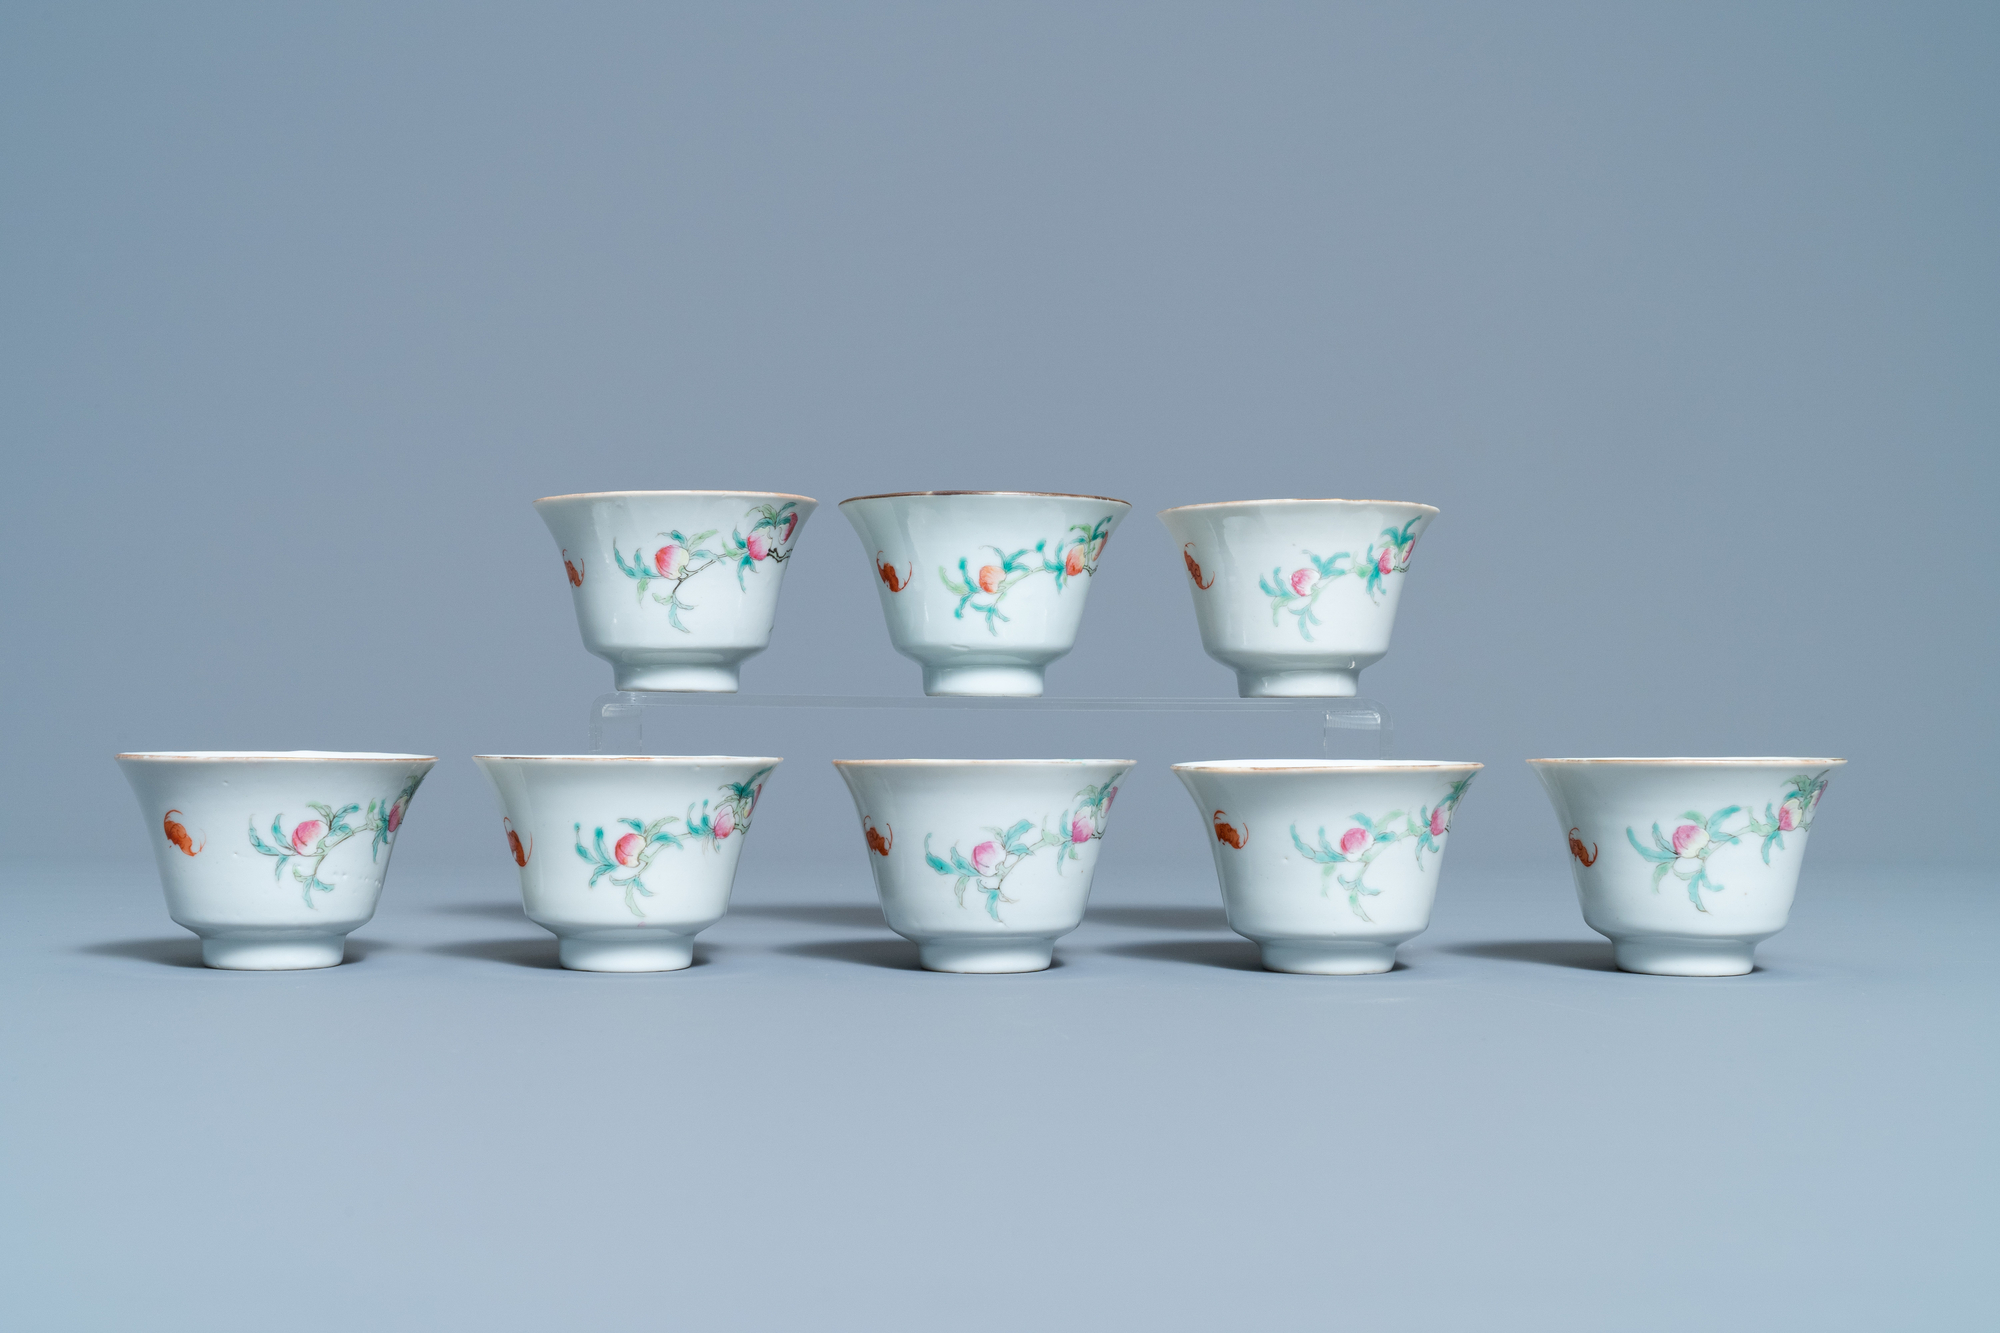 Eight Chinese famille rose 'nine peach' bowls, Hui Tong Zhen Pin mark, 19/20th C. - Image 5 of 7